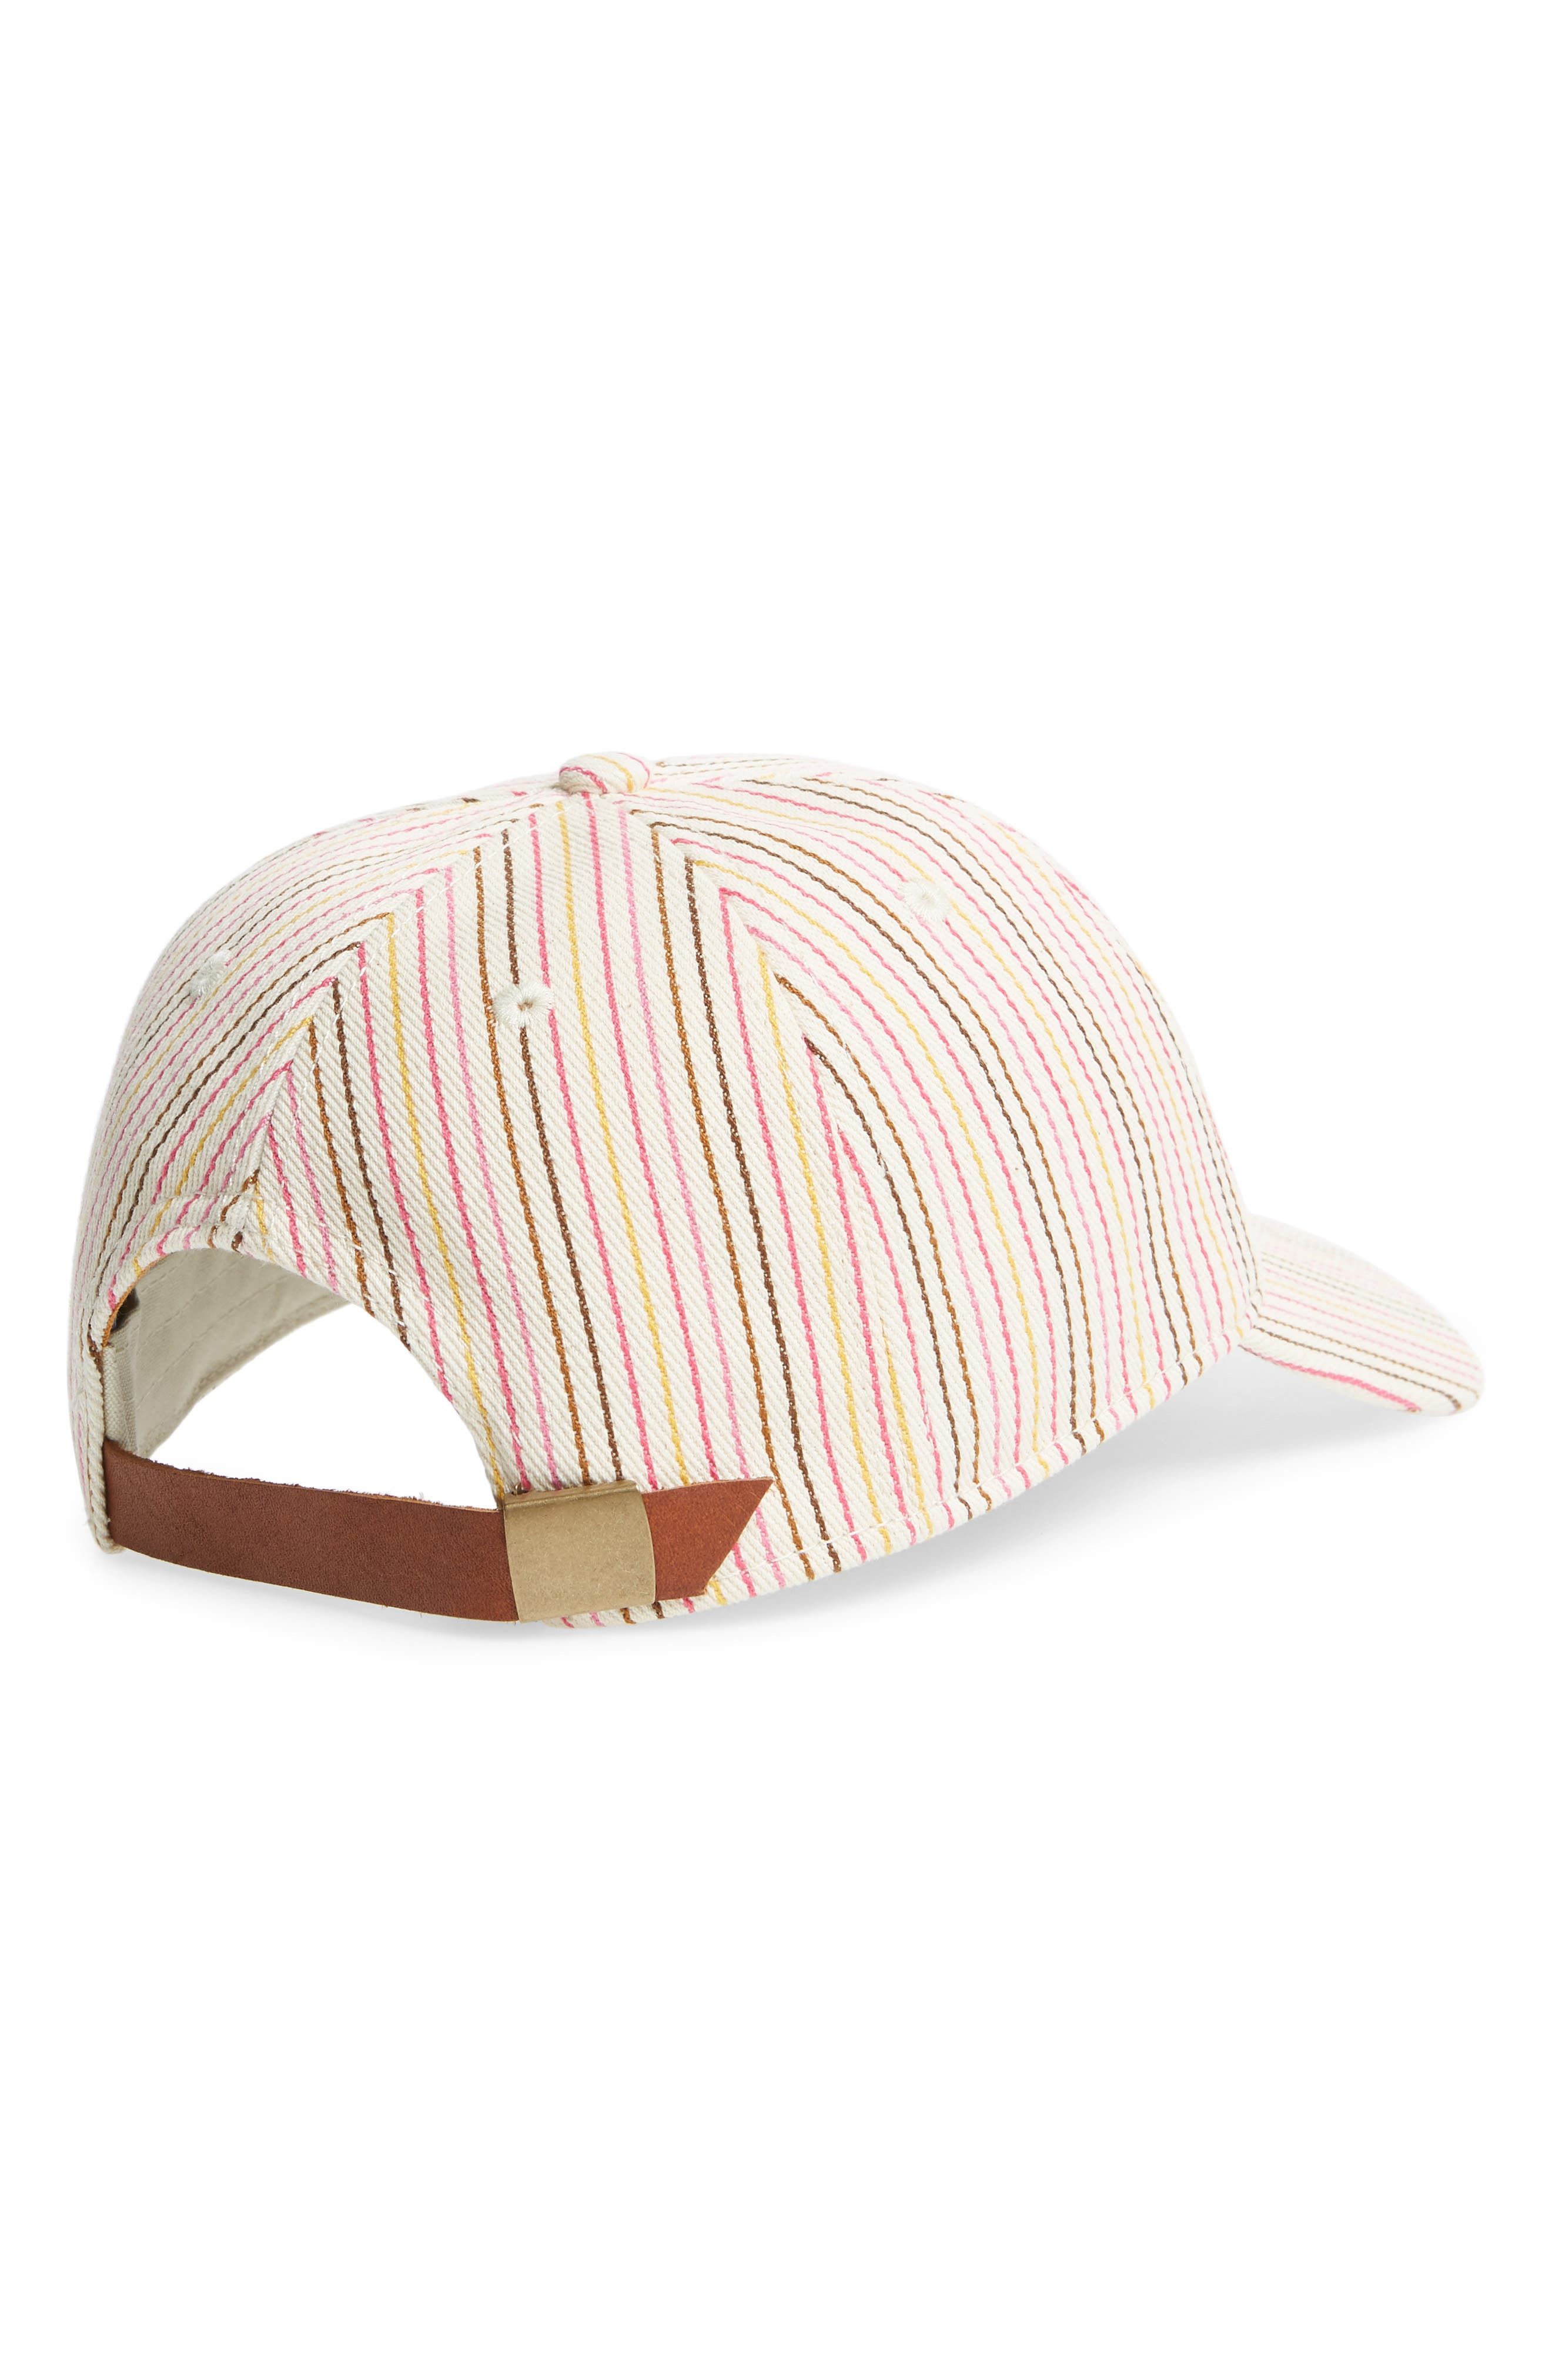 Multi Stripe Baseball Cap,                             Alternate thumbnail 2, color,                             Pink Multi Stripe